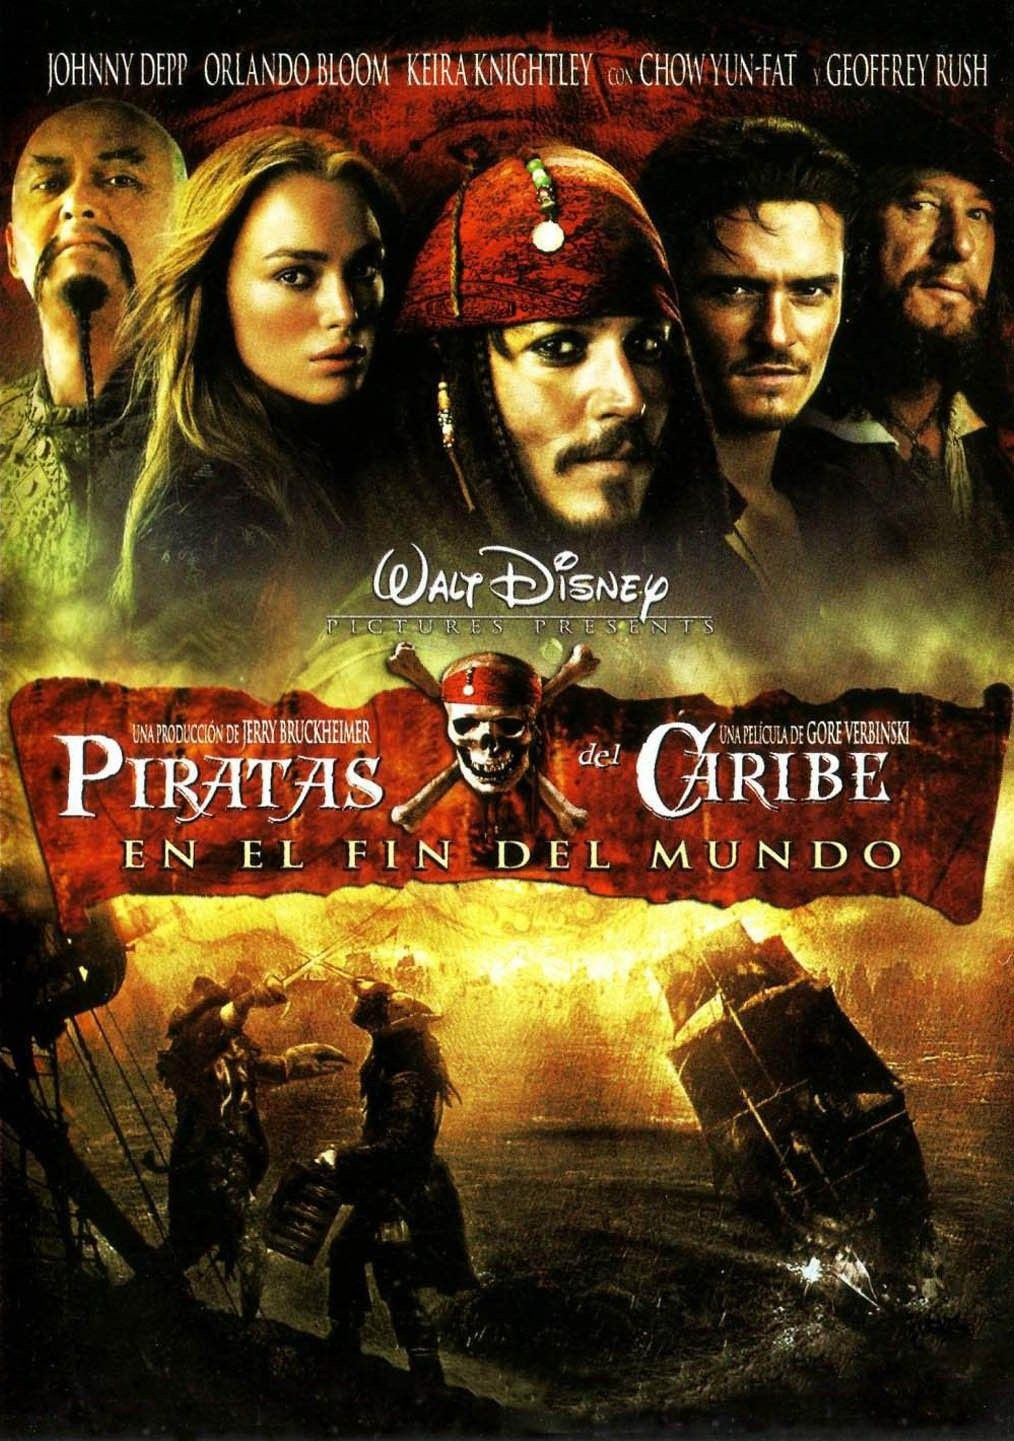 Ver Piratas Del Caribe En El Fin Del Mundo Online Gratis 2007 Hd Película Completa Español Pirates Of The Caribbean Walt Disney Movies Pirate Movies